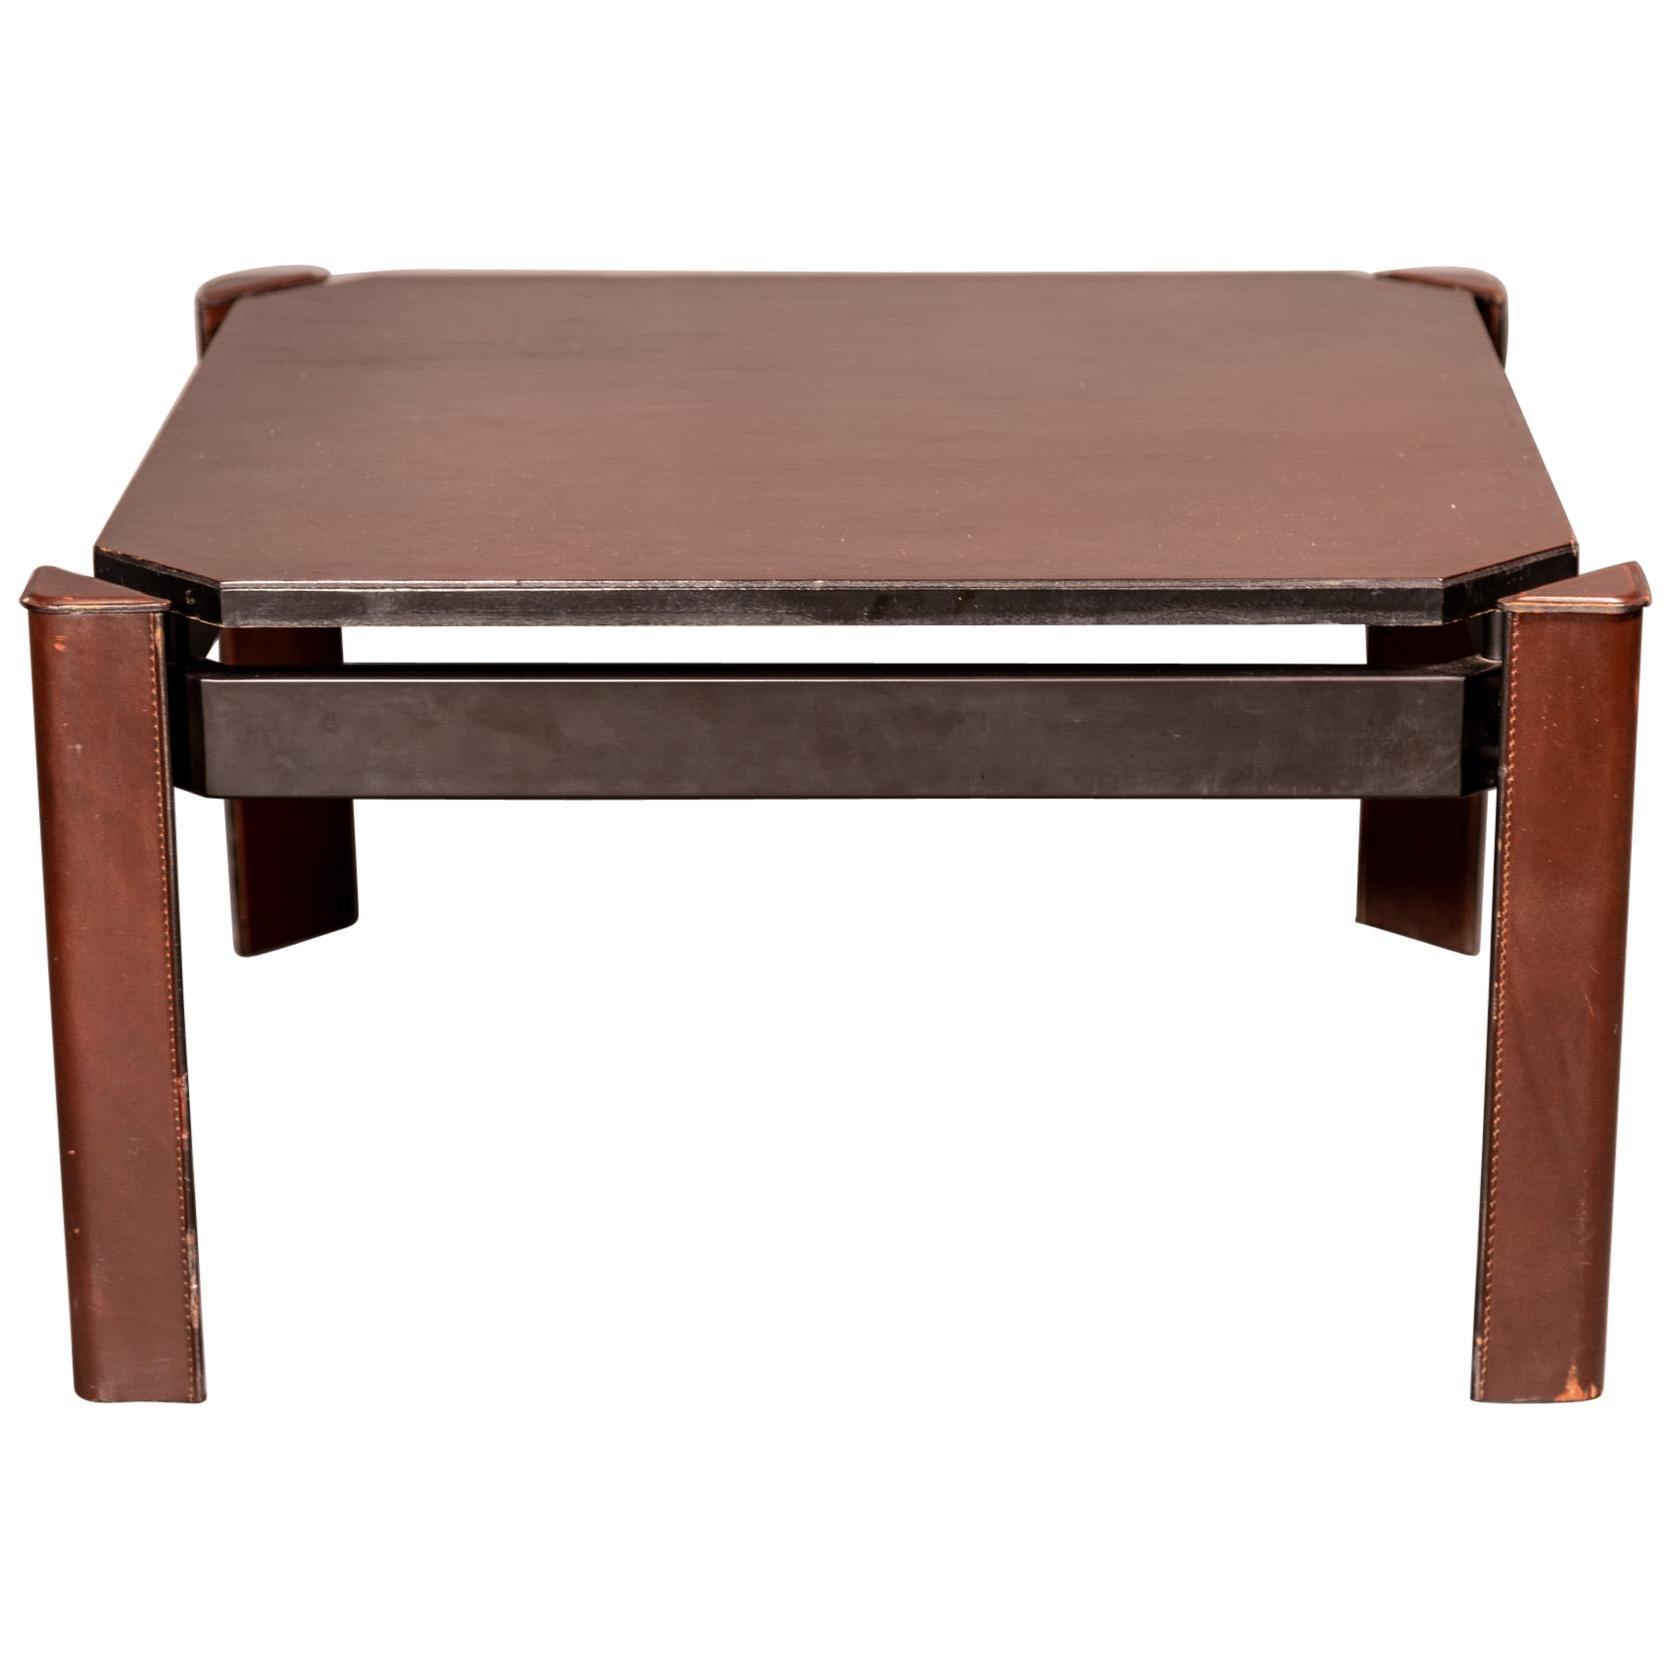 Matteo Grassi Leather Coffee Table